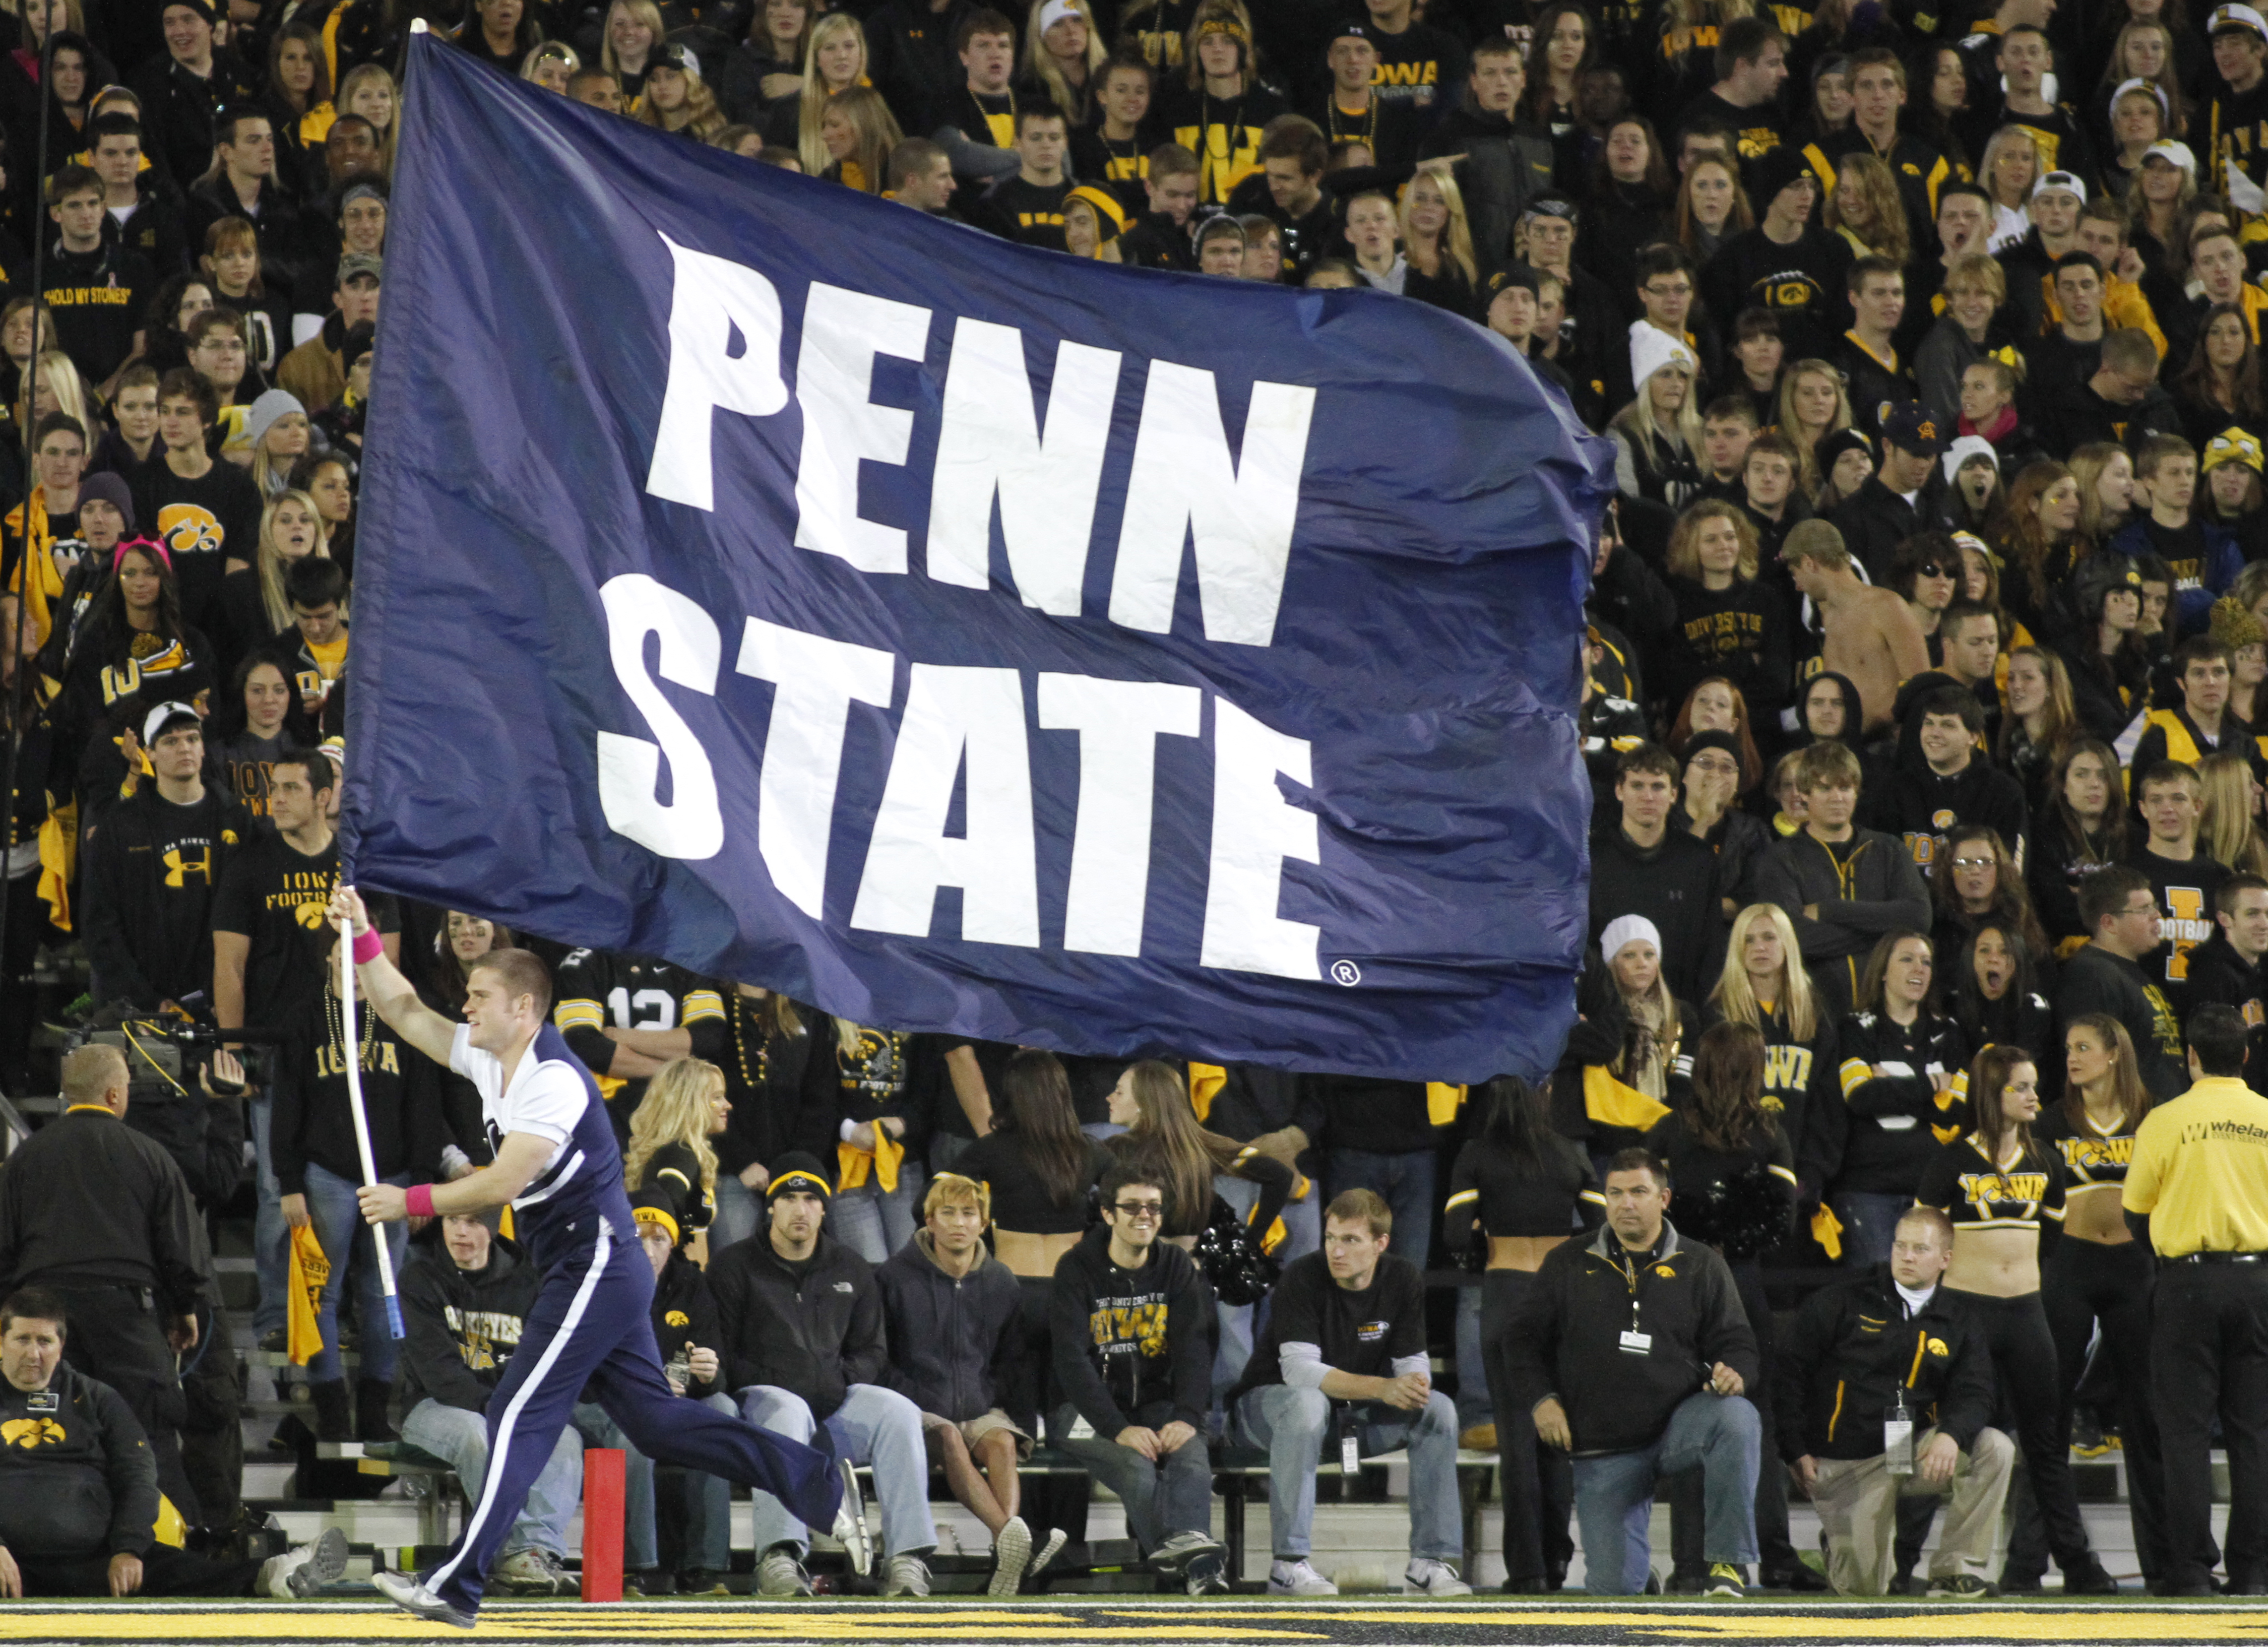 A cheerleader of the Penn State Nittany Lions carries a banner through the endzone to celebrate a touchdown against the Iowa Hawkeyes on October 20, 2012 at Kinnick Stadium in Iowa City, Iowa.